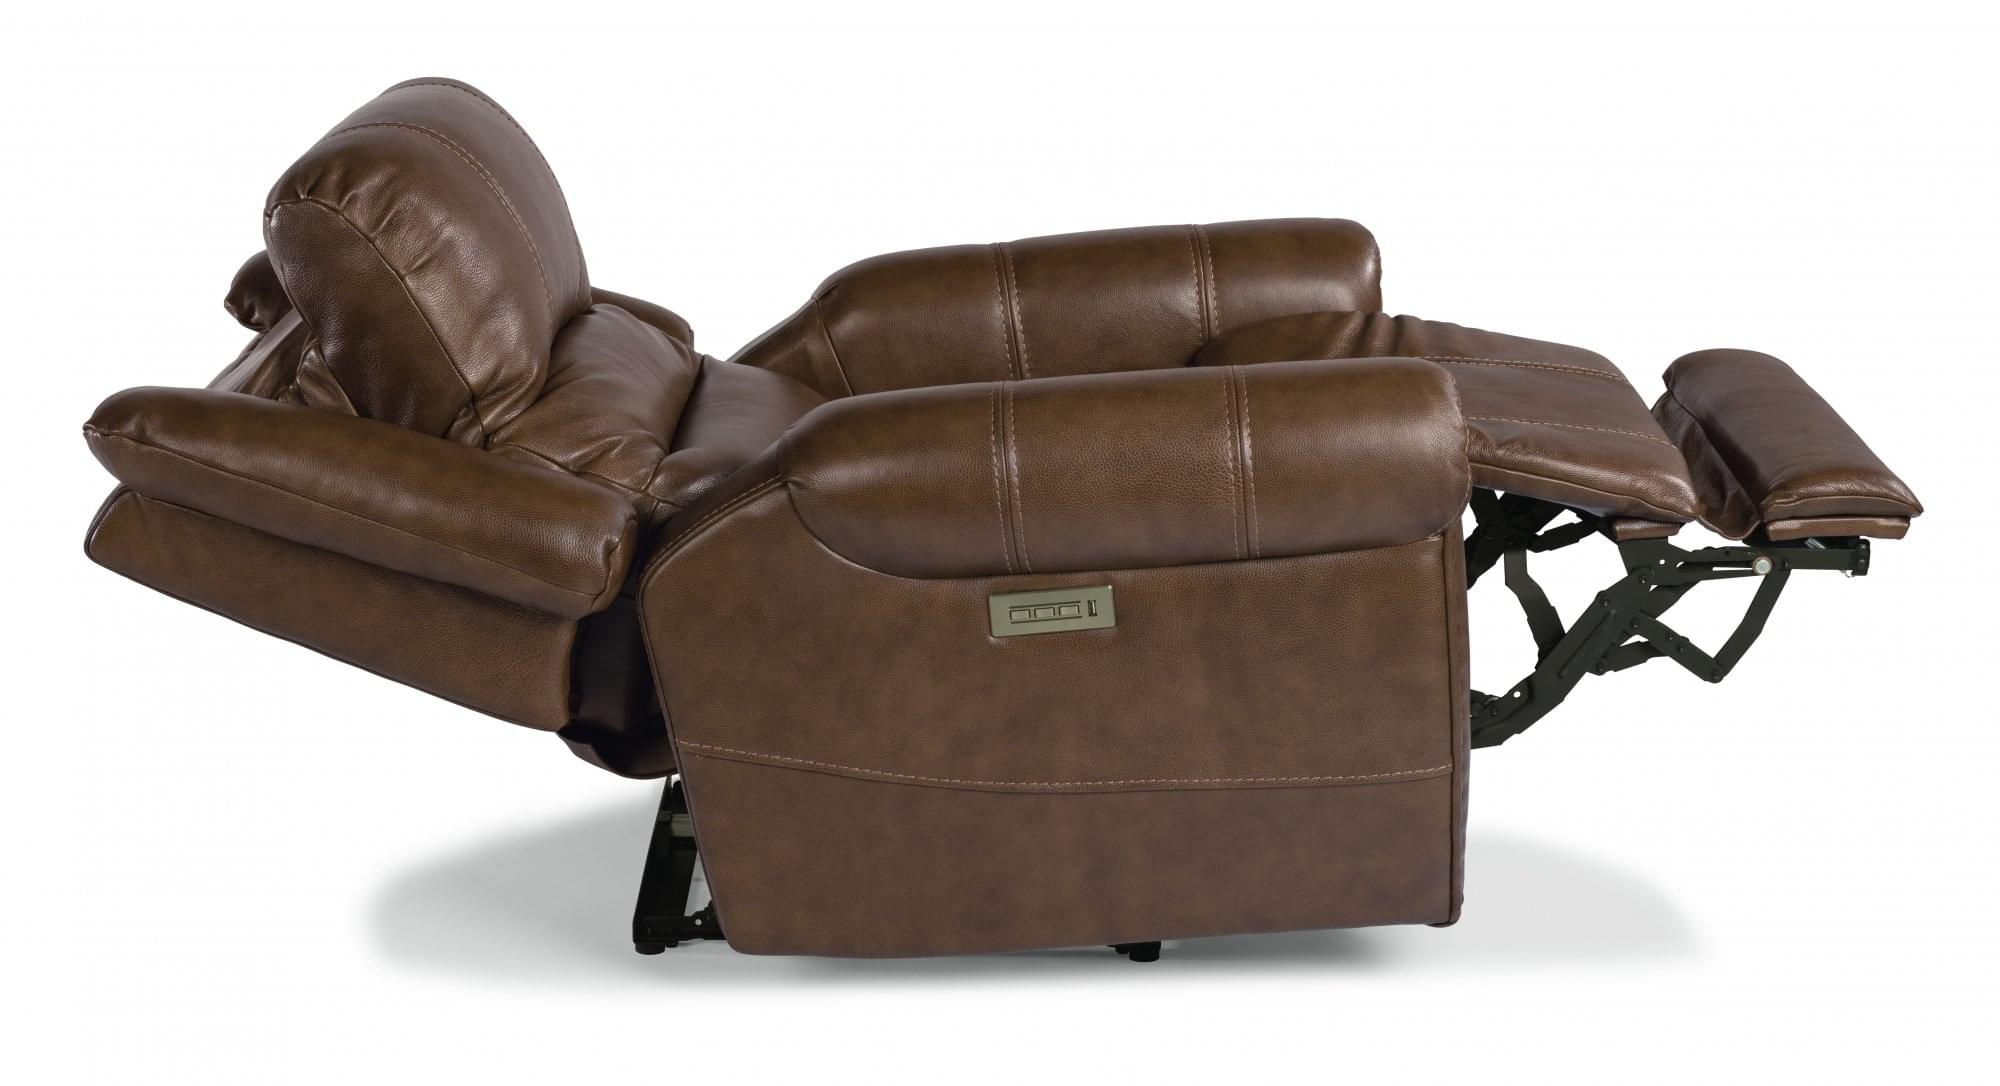 Shop Flexsteel chairs. chairs for your living room in Monterey county! Stop by Mums Place Furniture Store in Carmel, CA.